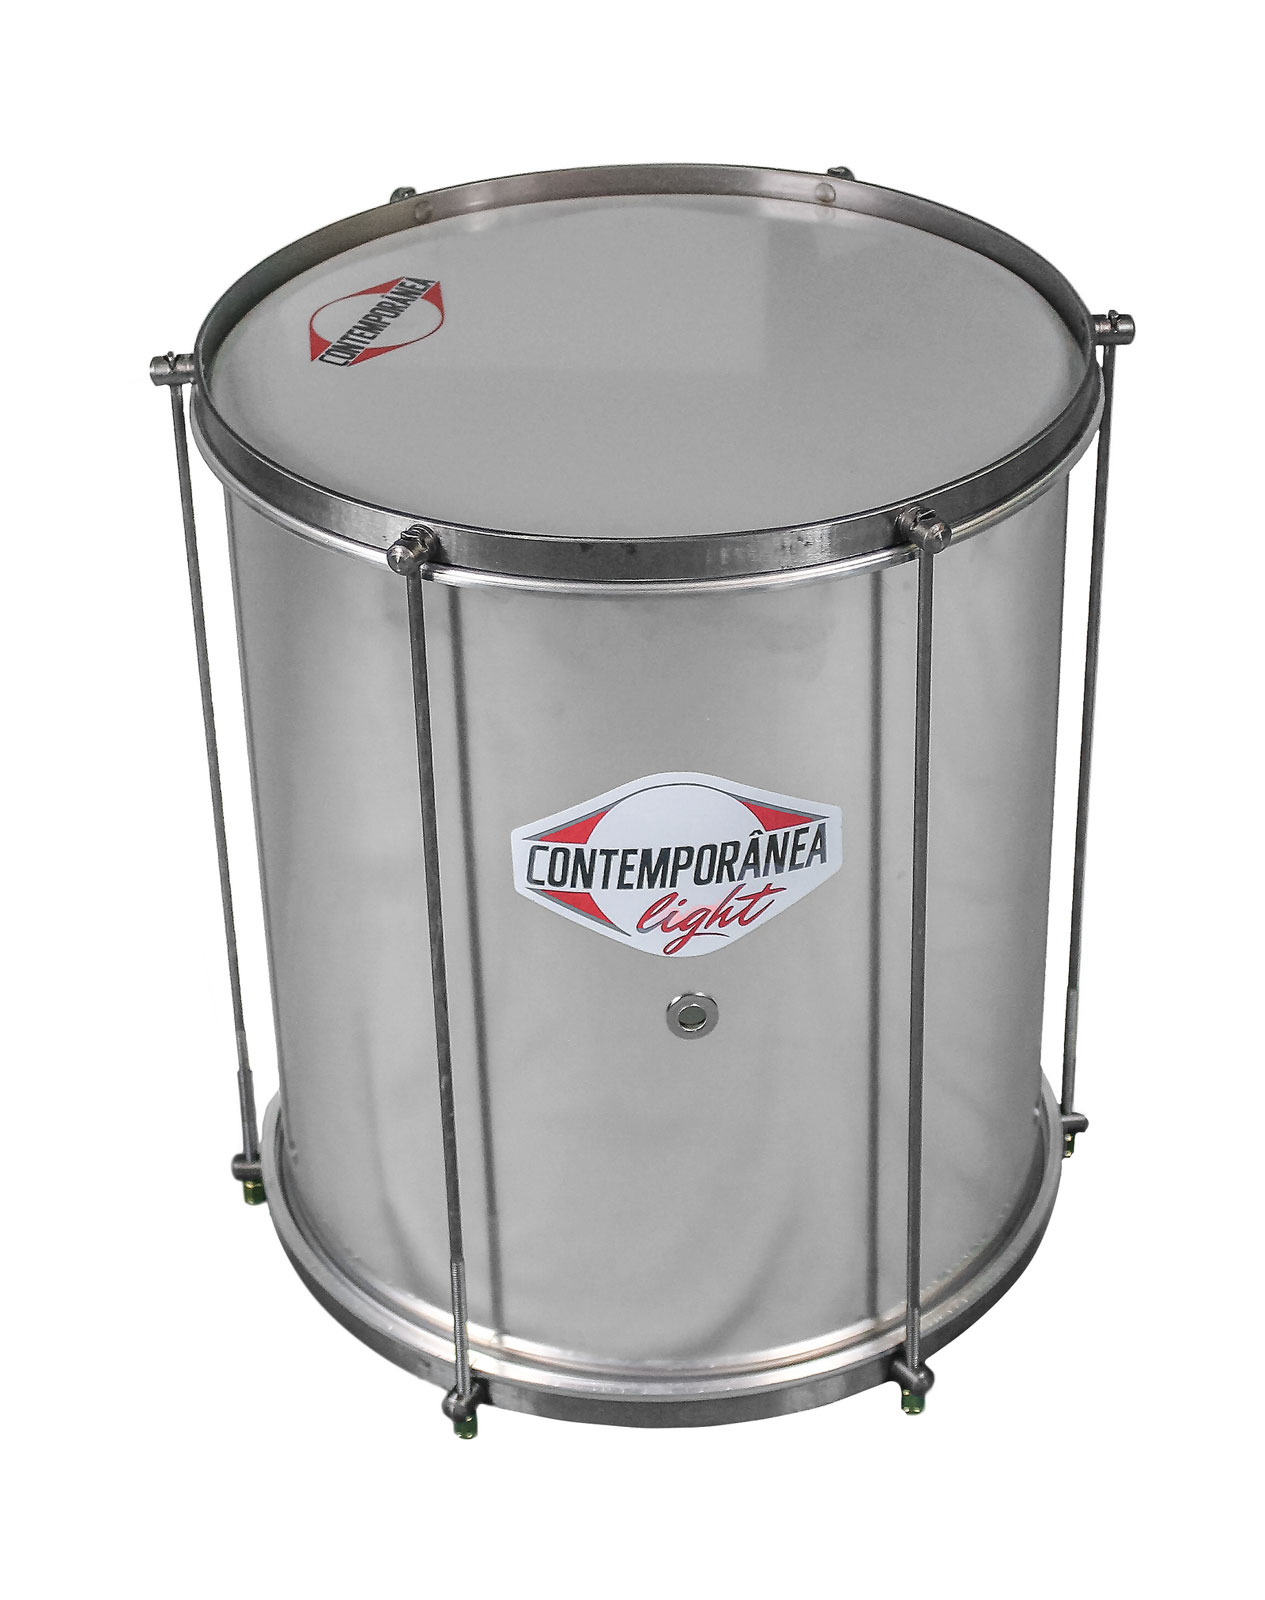 CL-SUA01 SURDO METAL LIGHT 14